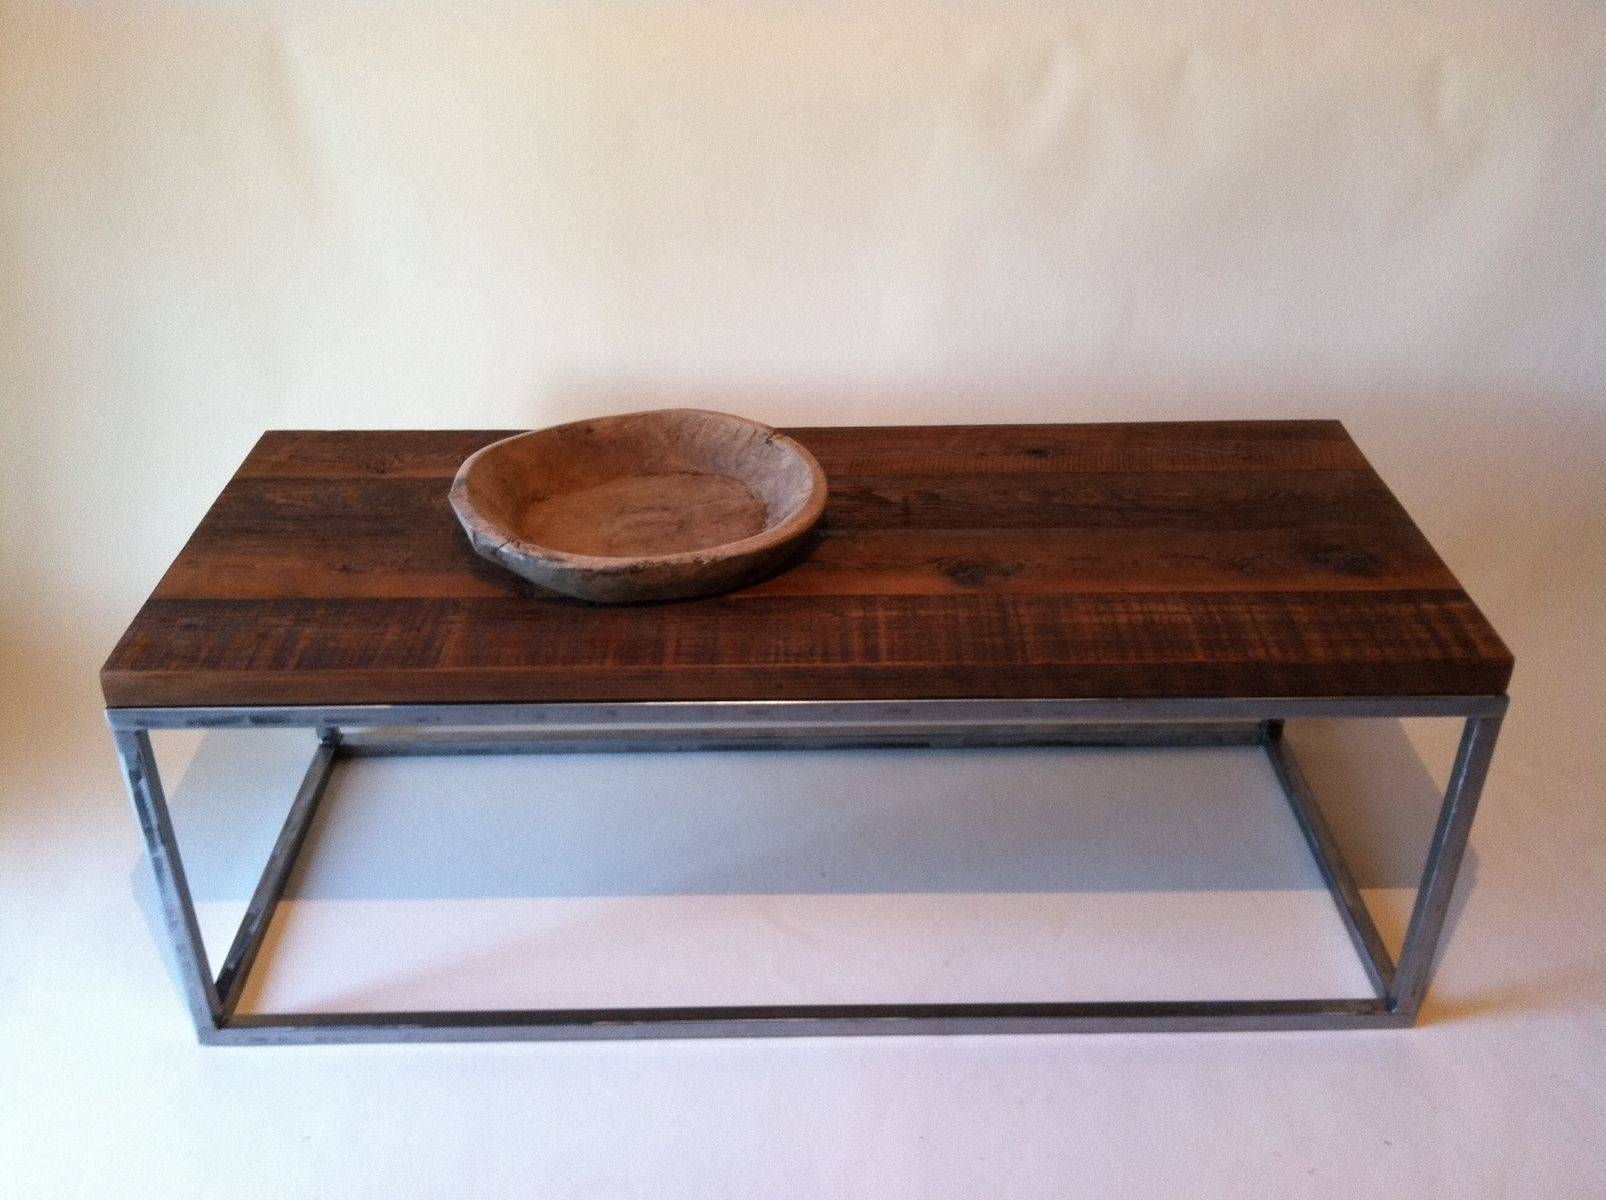 Furniture. Iron And Wood Coffee Table Ideas: Dark Brown Rectangle regarding Dark Wood Coffee Tables (Image 10 of 15)